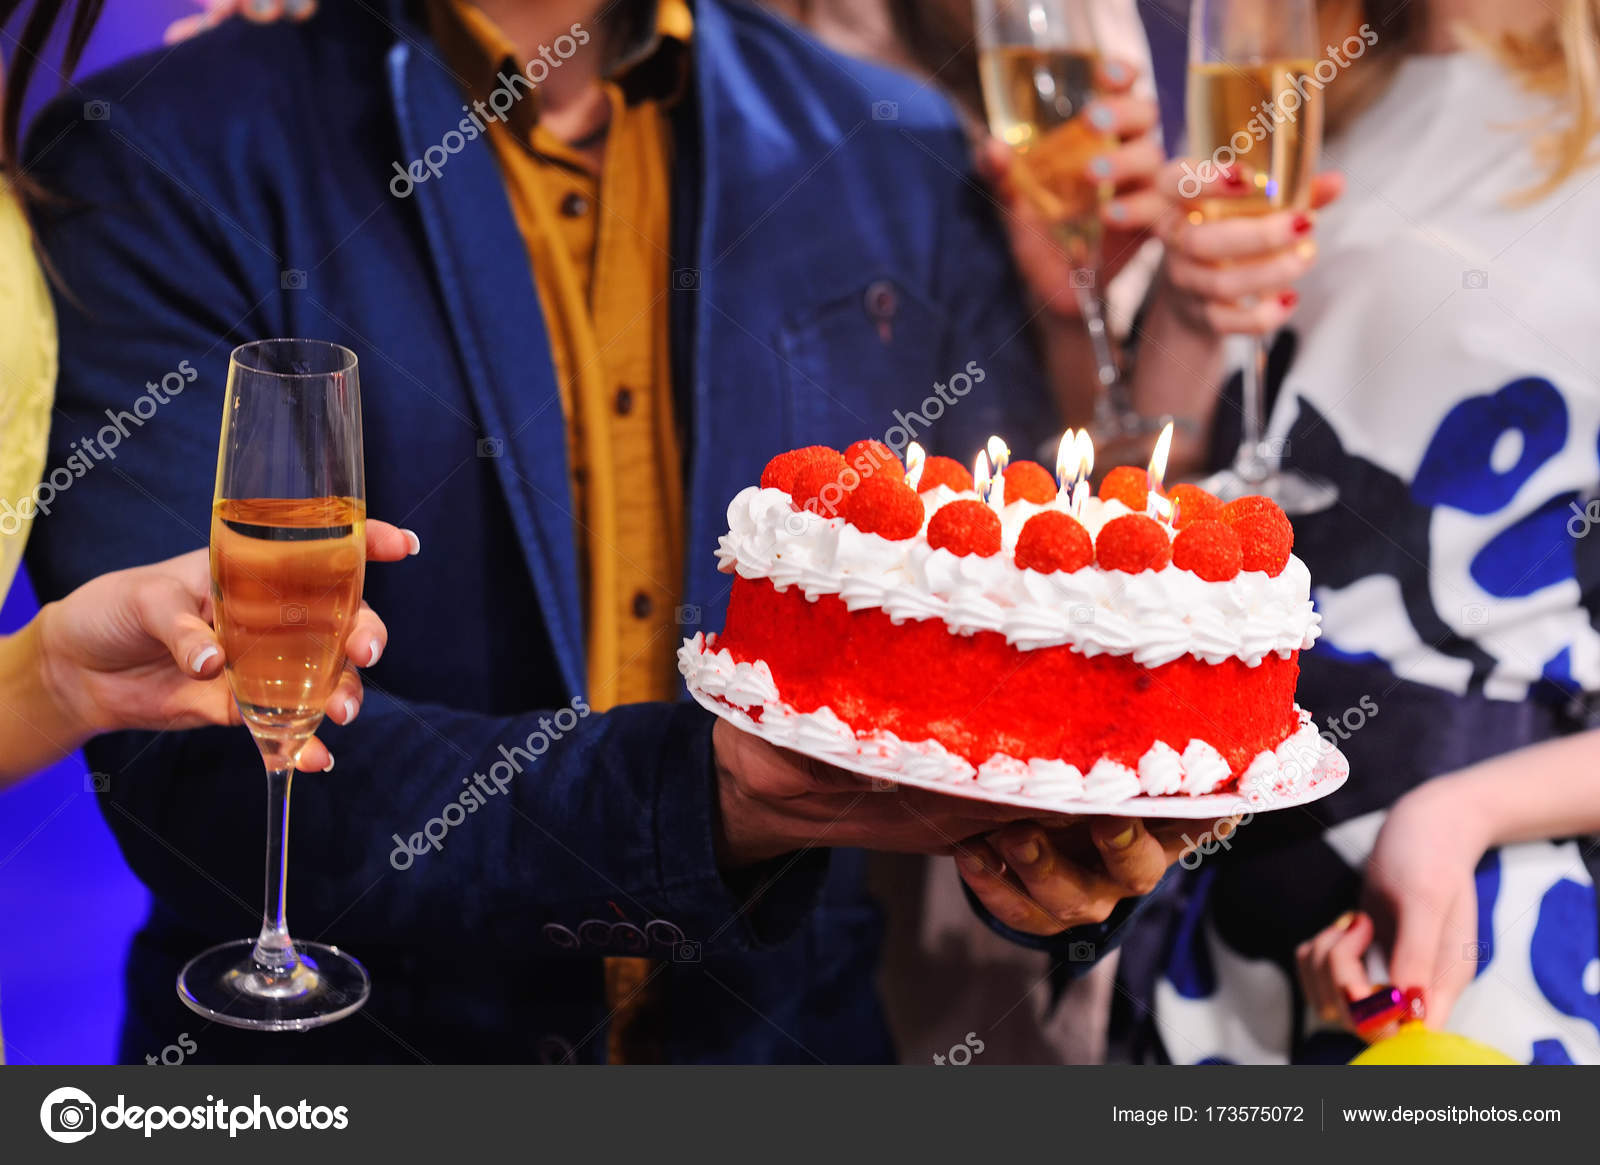 Birthday Cake With Candles And A Glass Of Champagne Closeup